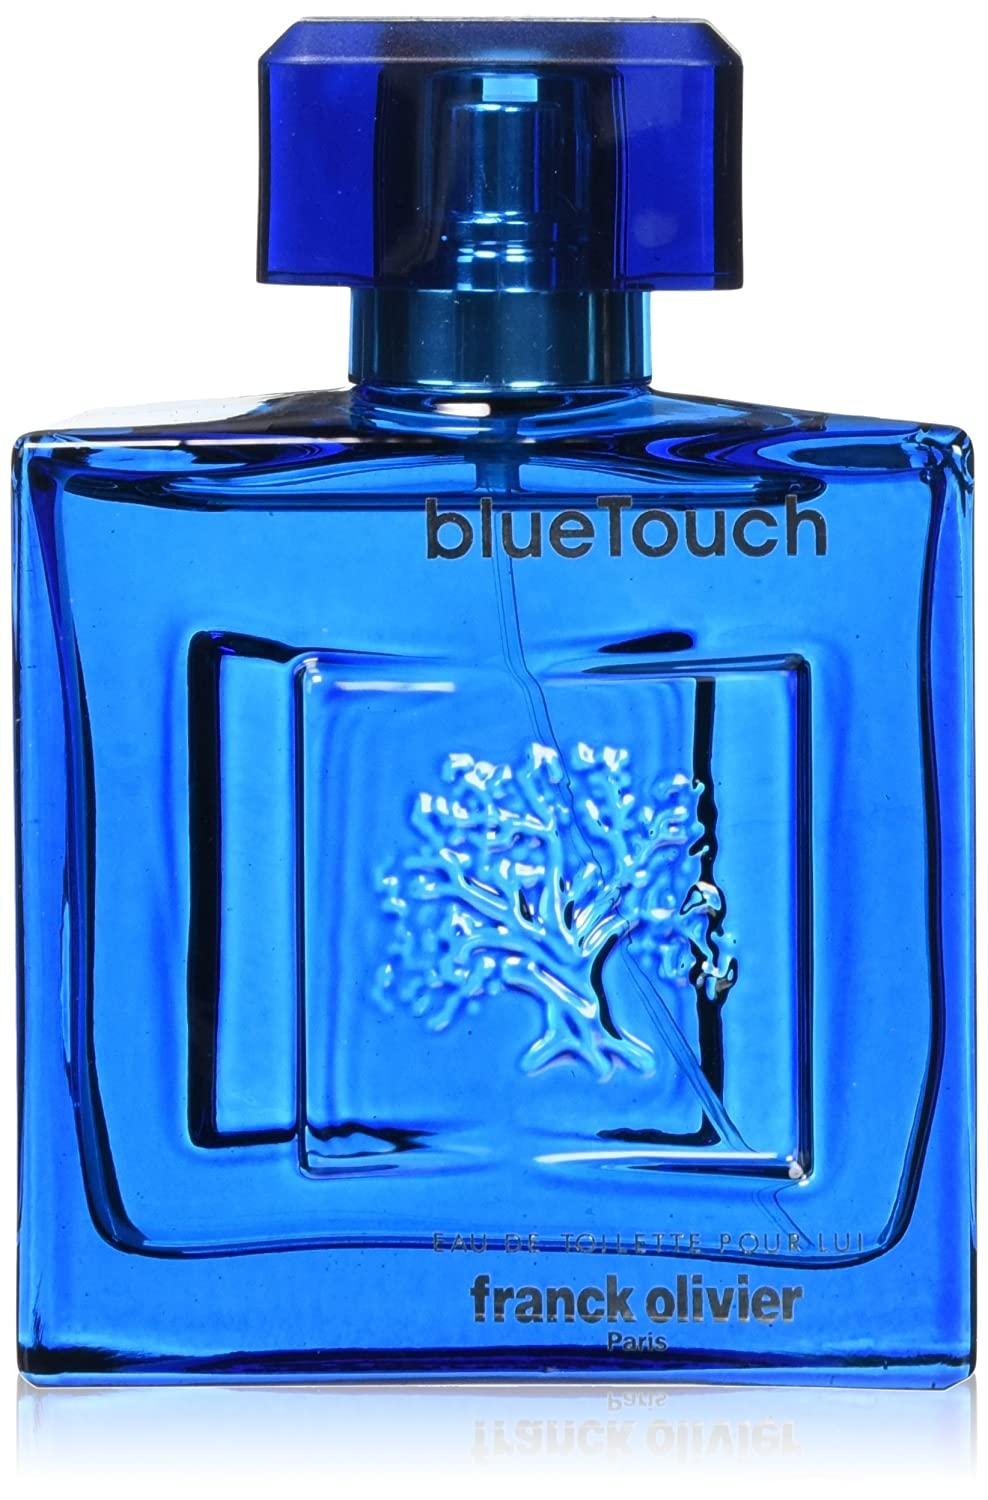 Blue Touch by Franck Olivier Eau de Toilette Spray 100 ml